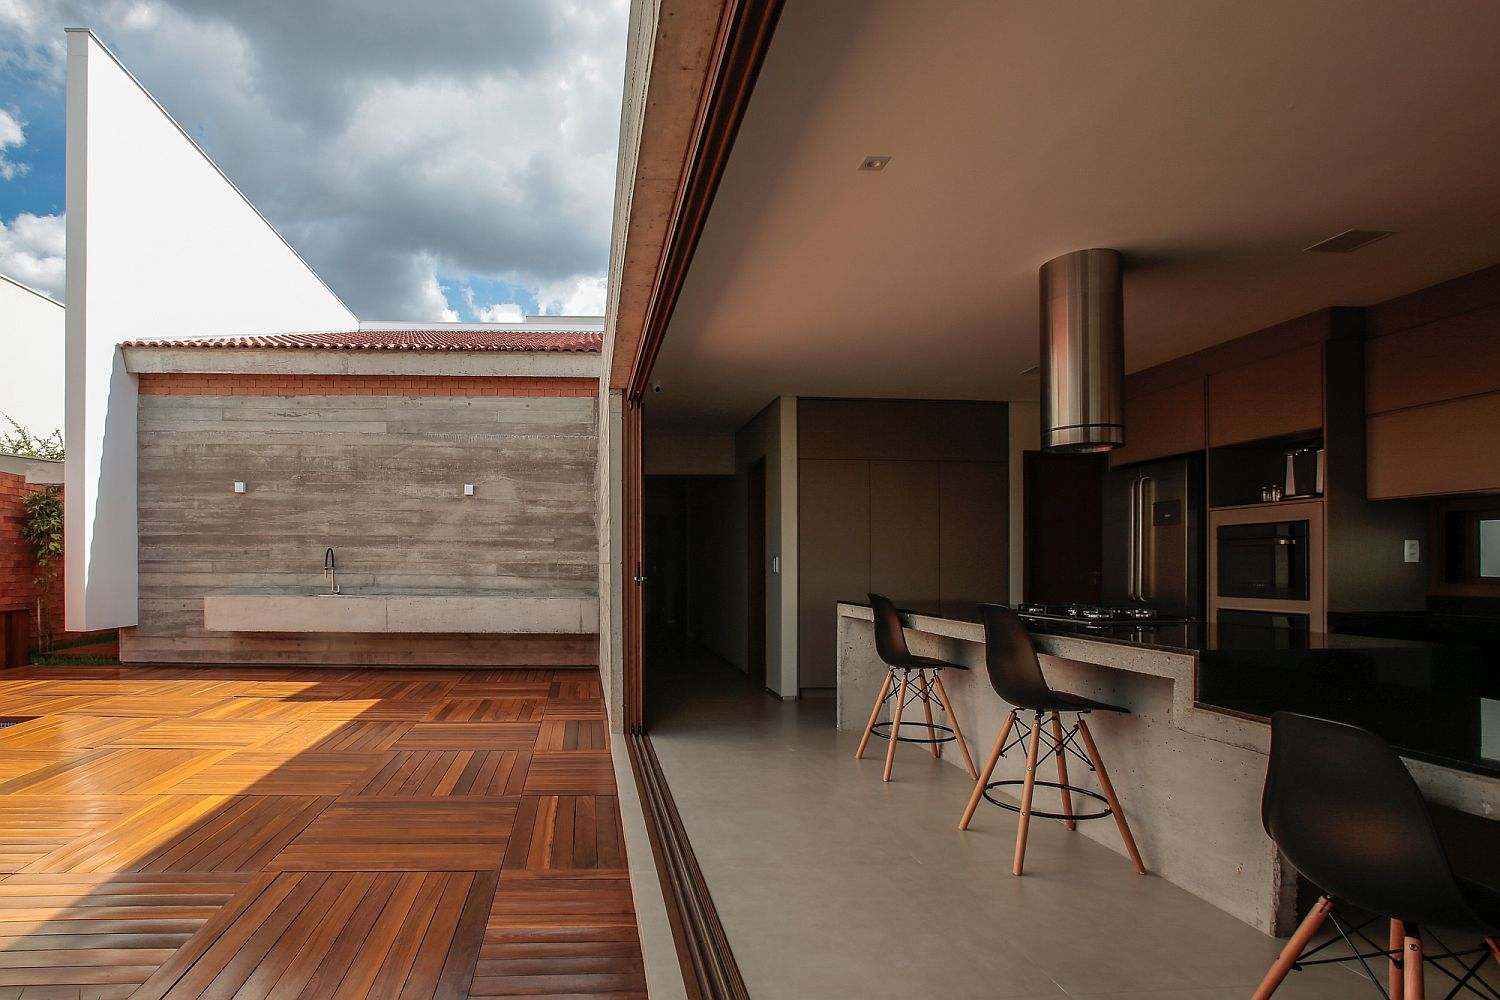 Sliding-glass-doors-connect-the-long-kitchen-with-the-wooden-deck-outside